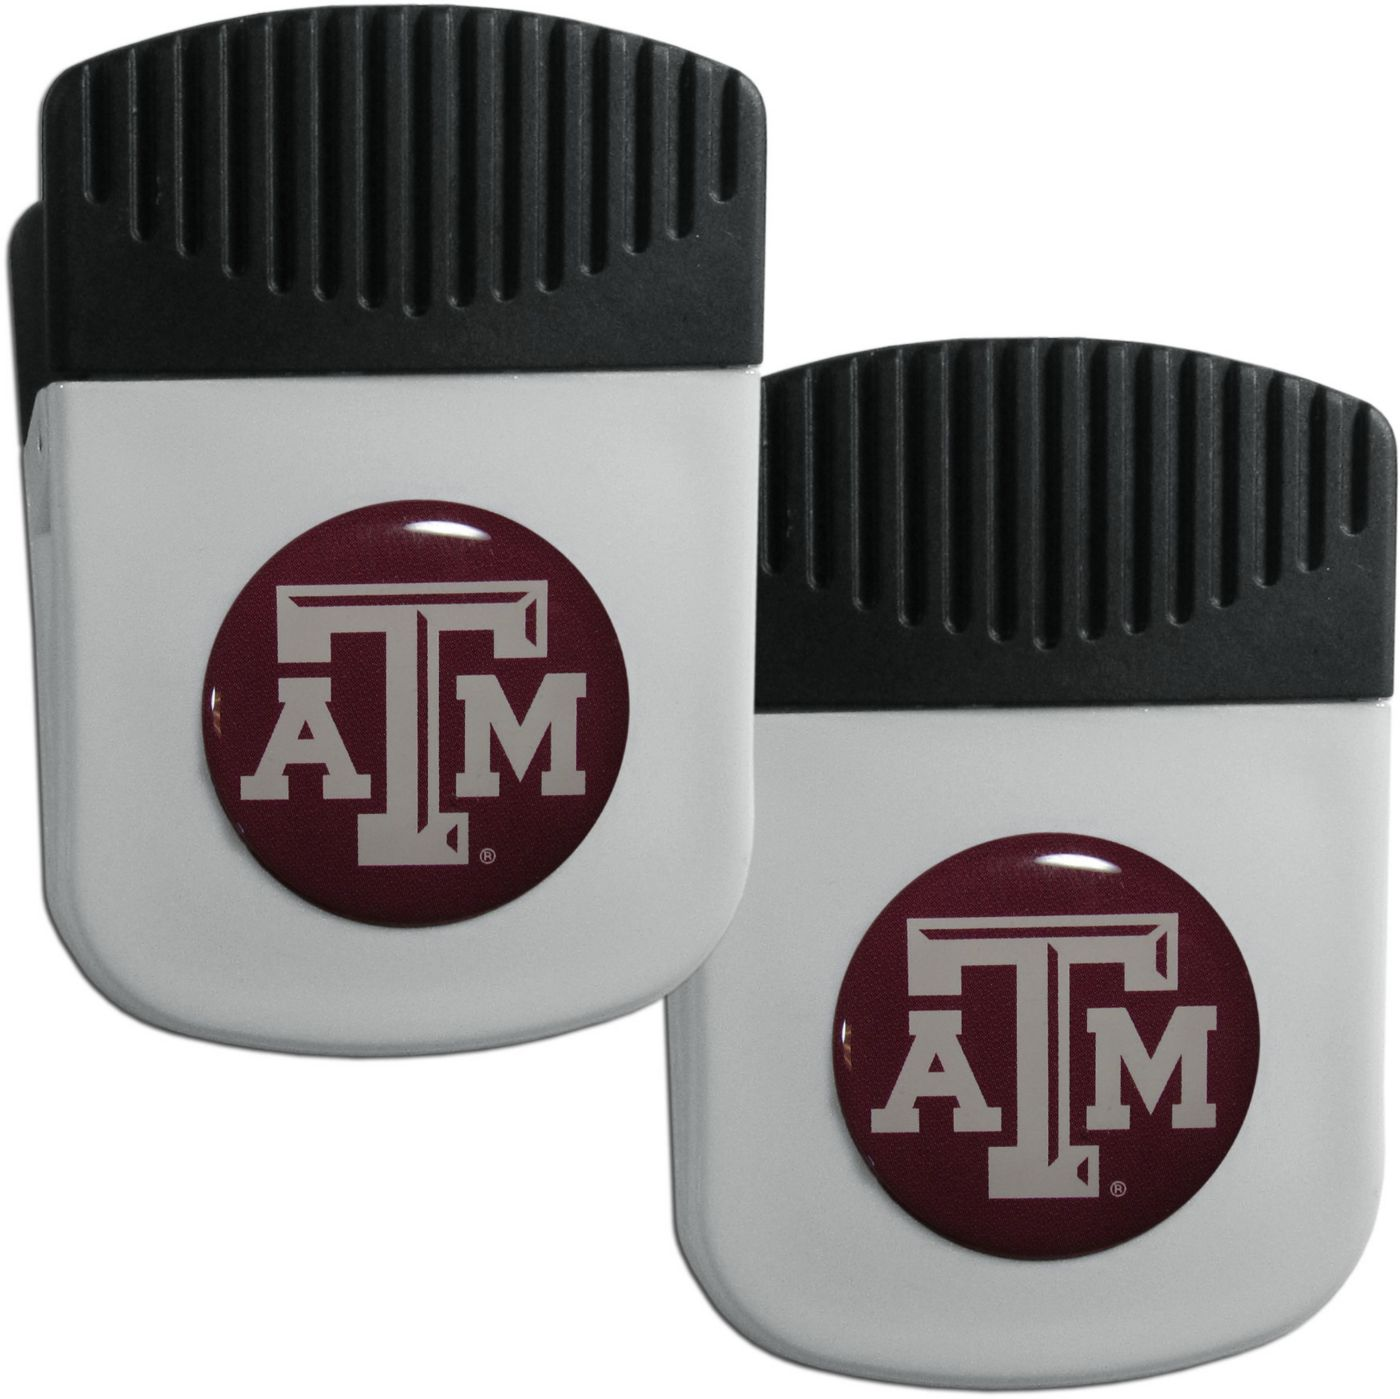 Texas A&M Aggies Chip Clip Magnet and Bottle Opener 2 Pack